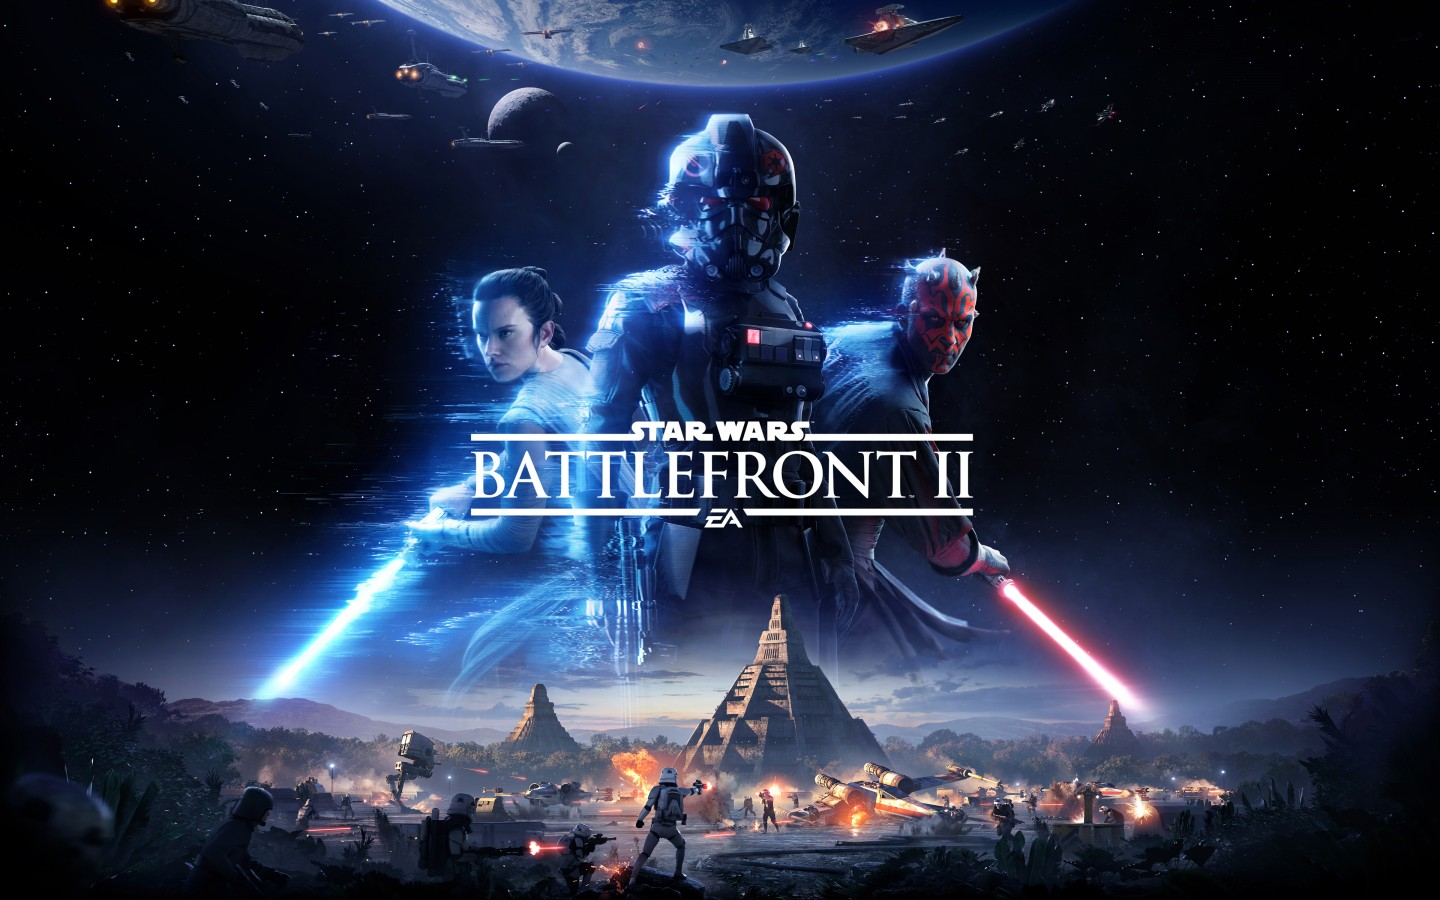 star_wars_battlefront_ii_2017_5k-wide